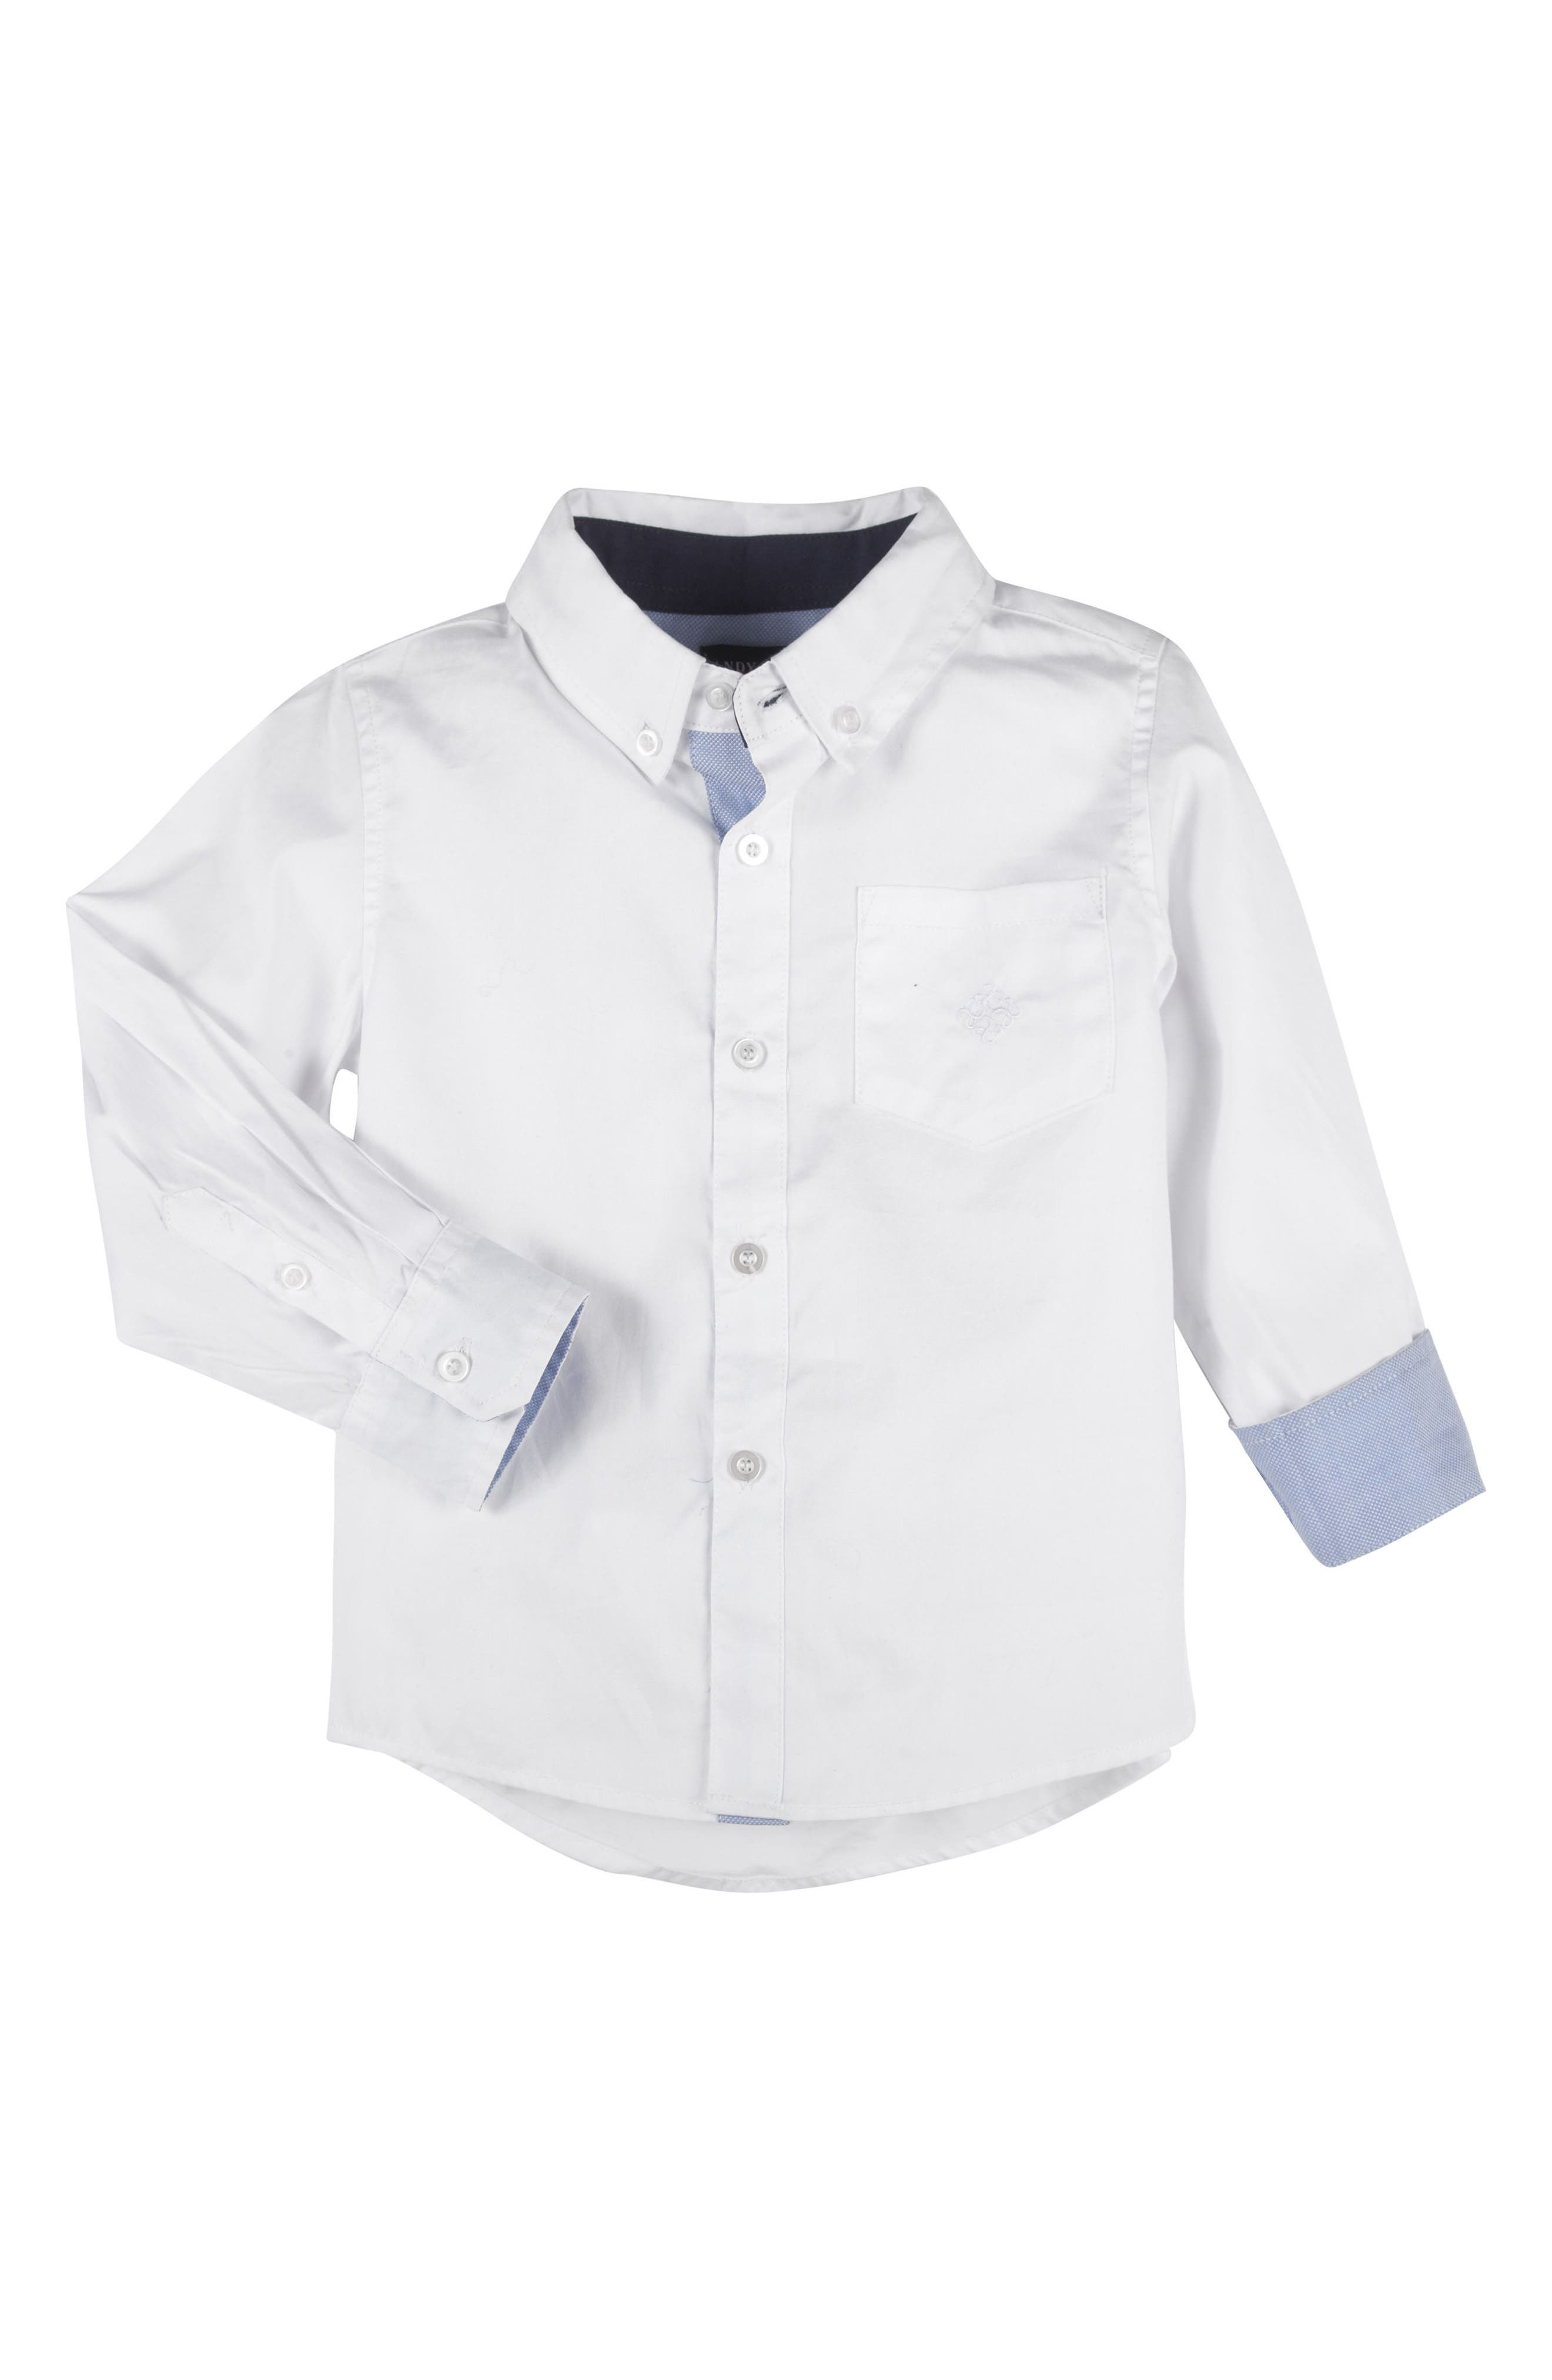 Oxford Shirt,                         Main,                         color, 101